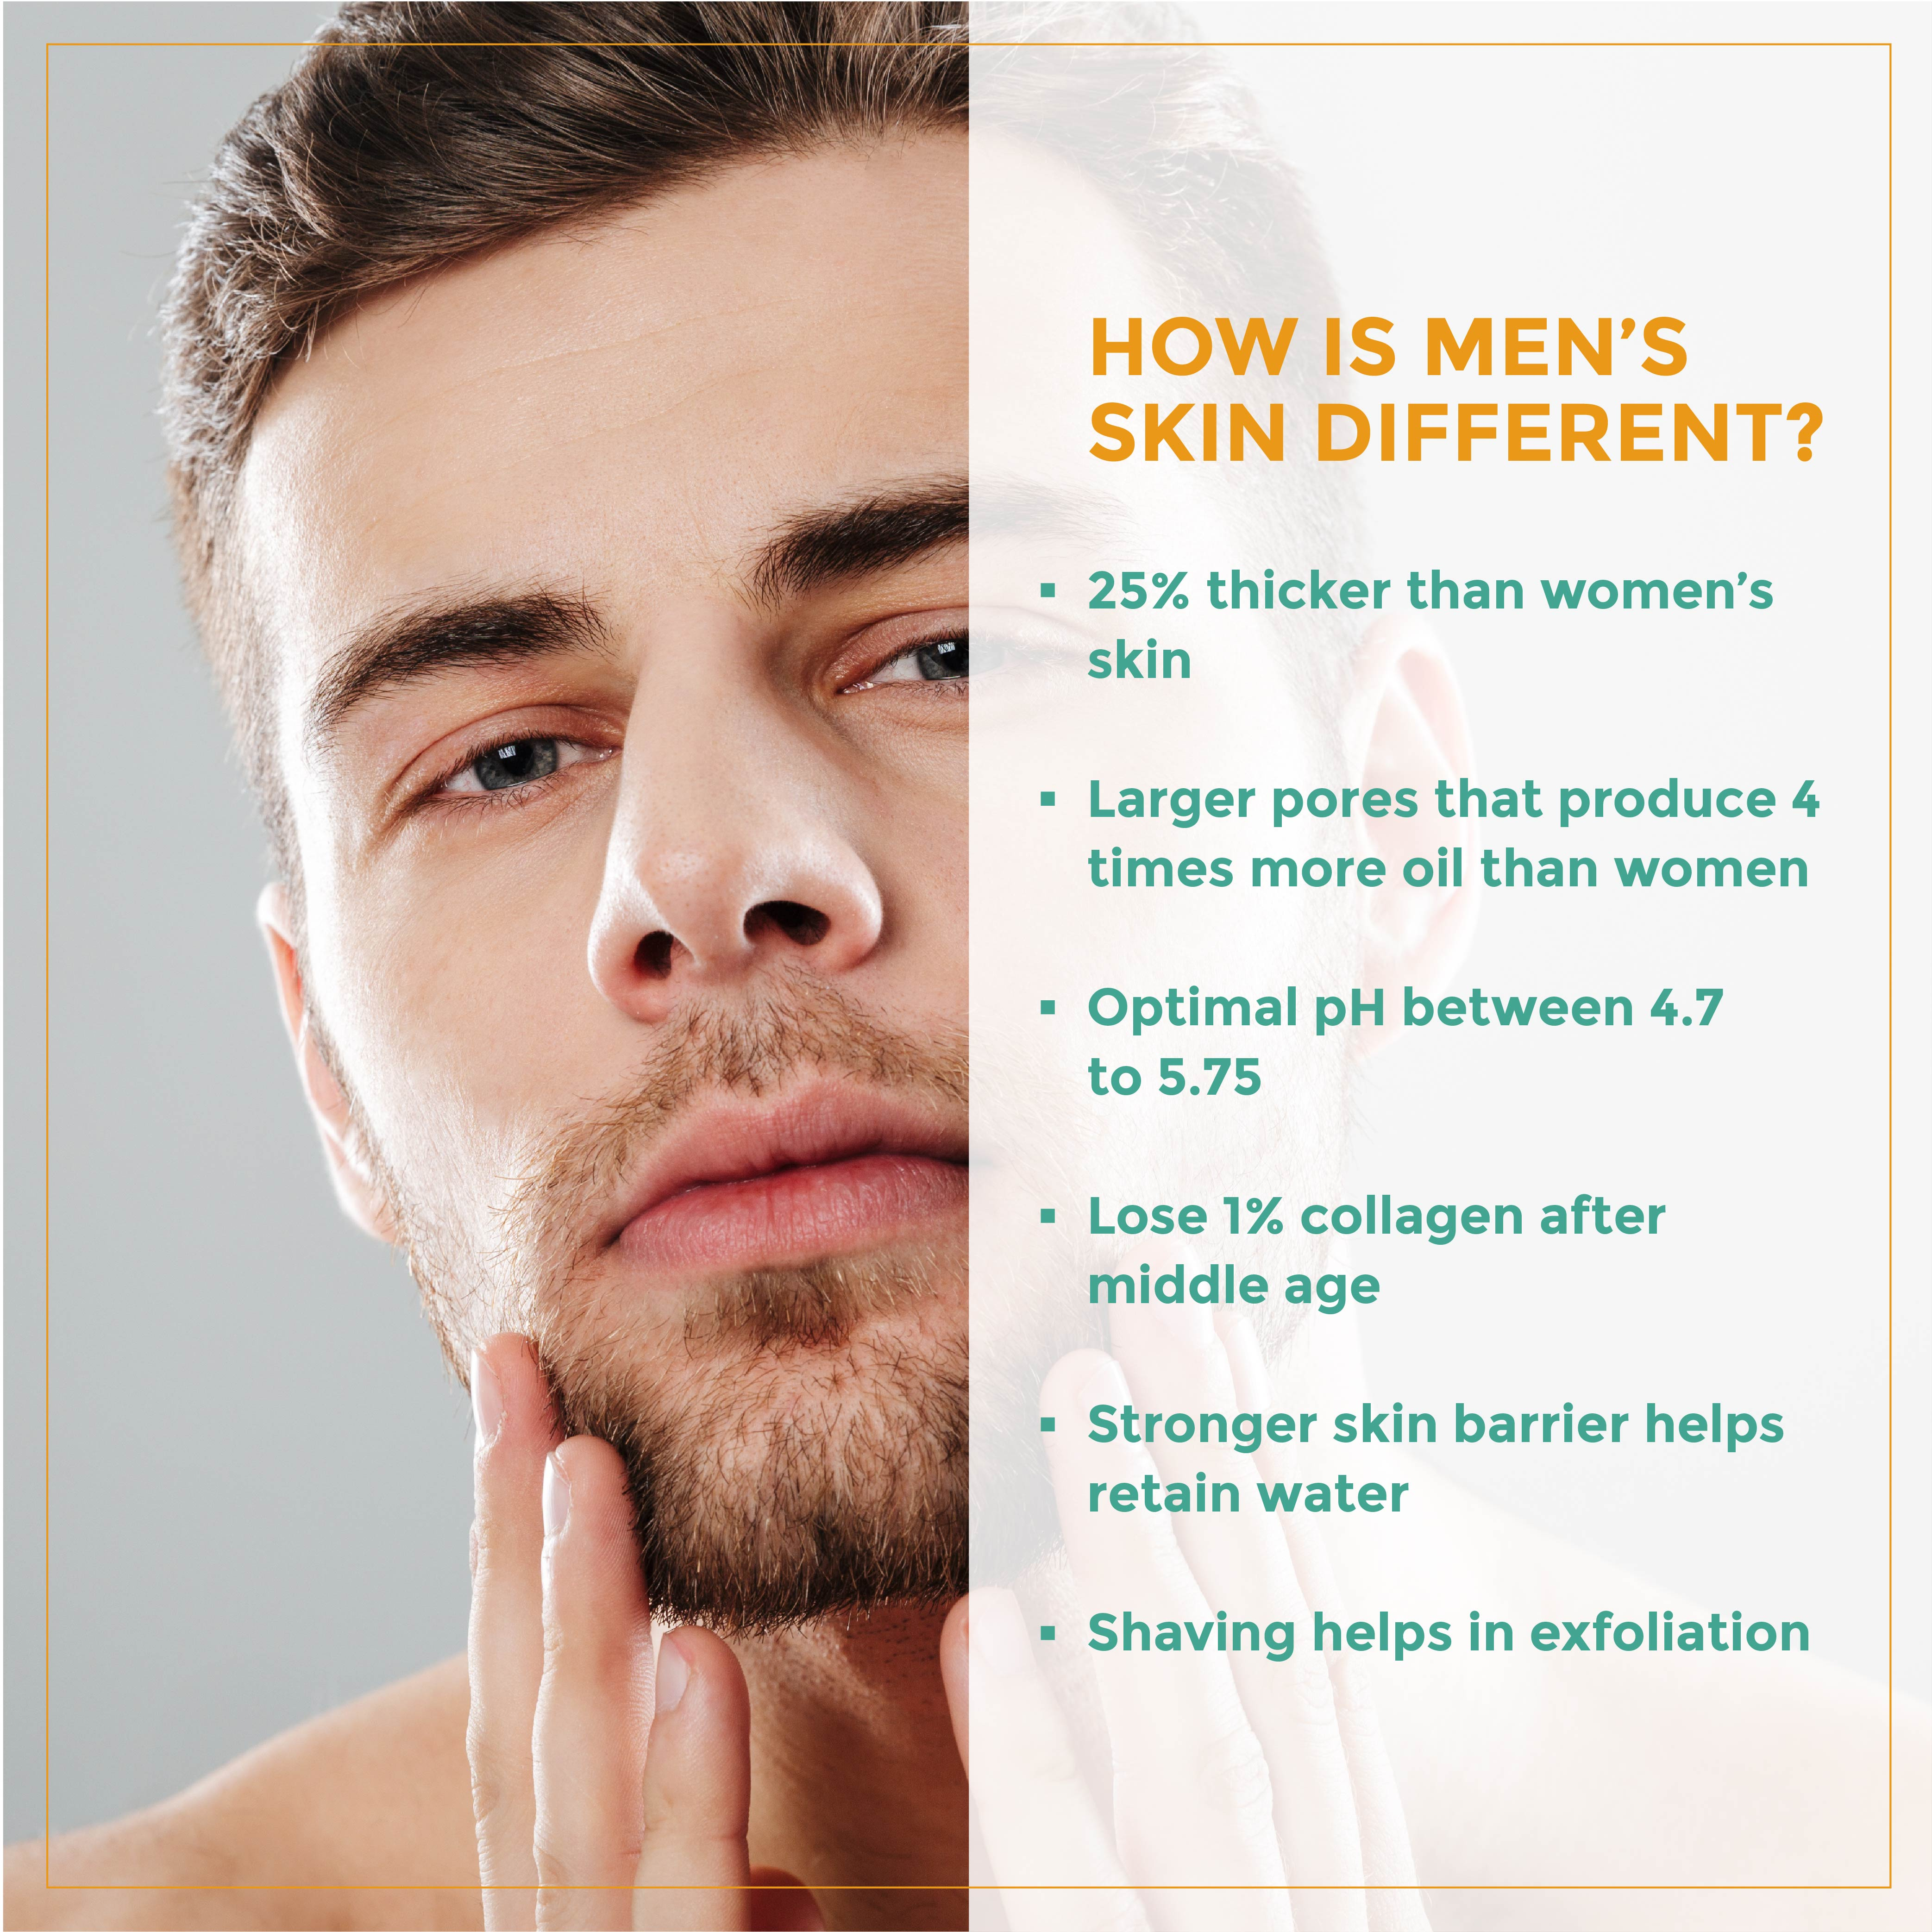 This is an image of how men's skin is different